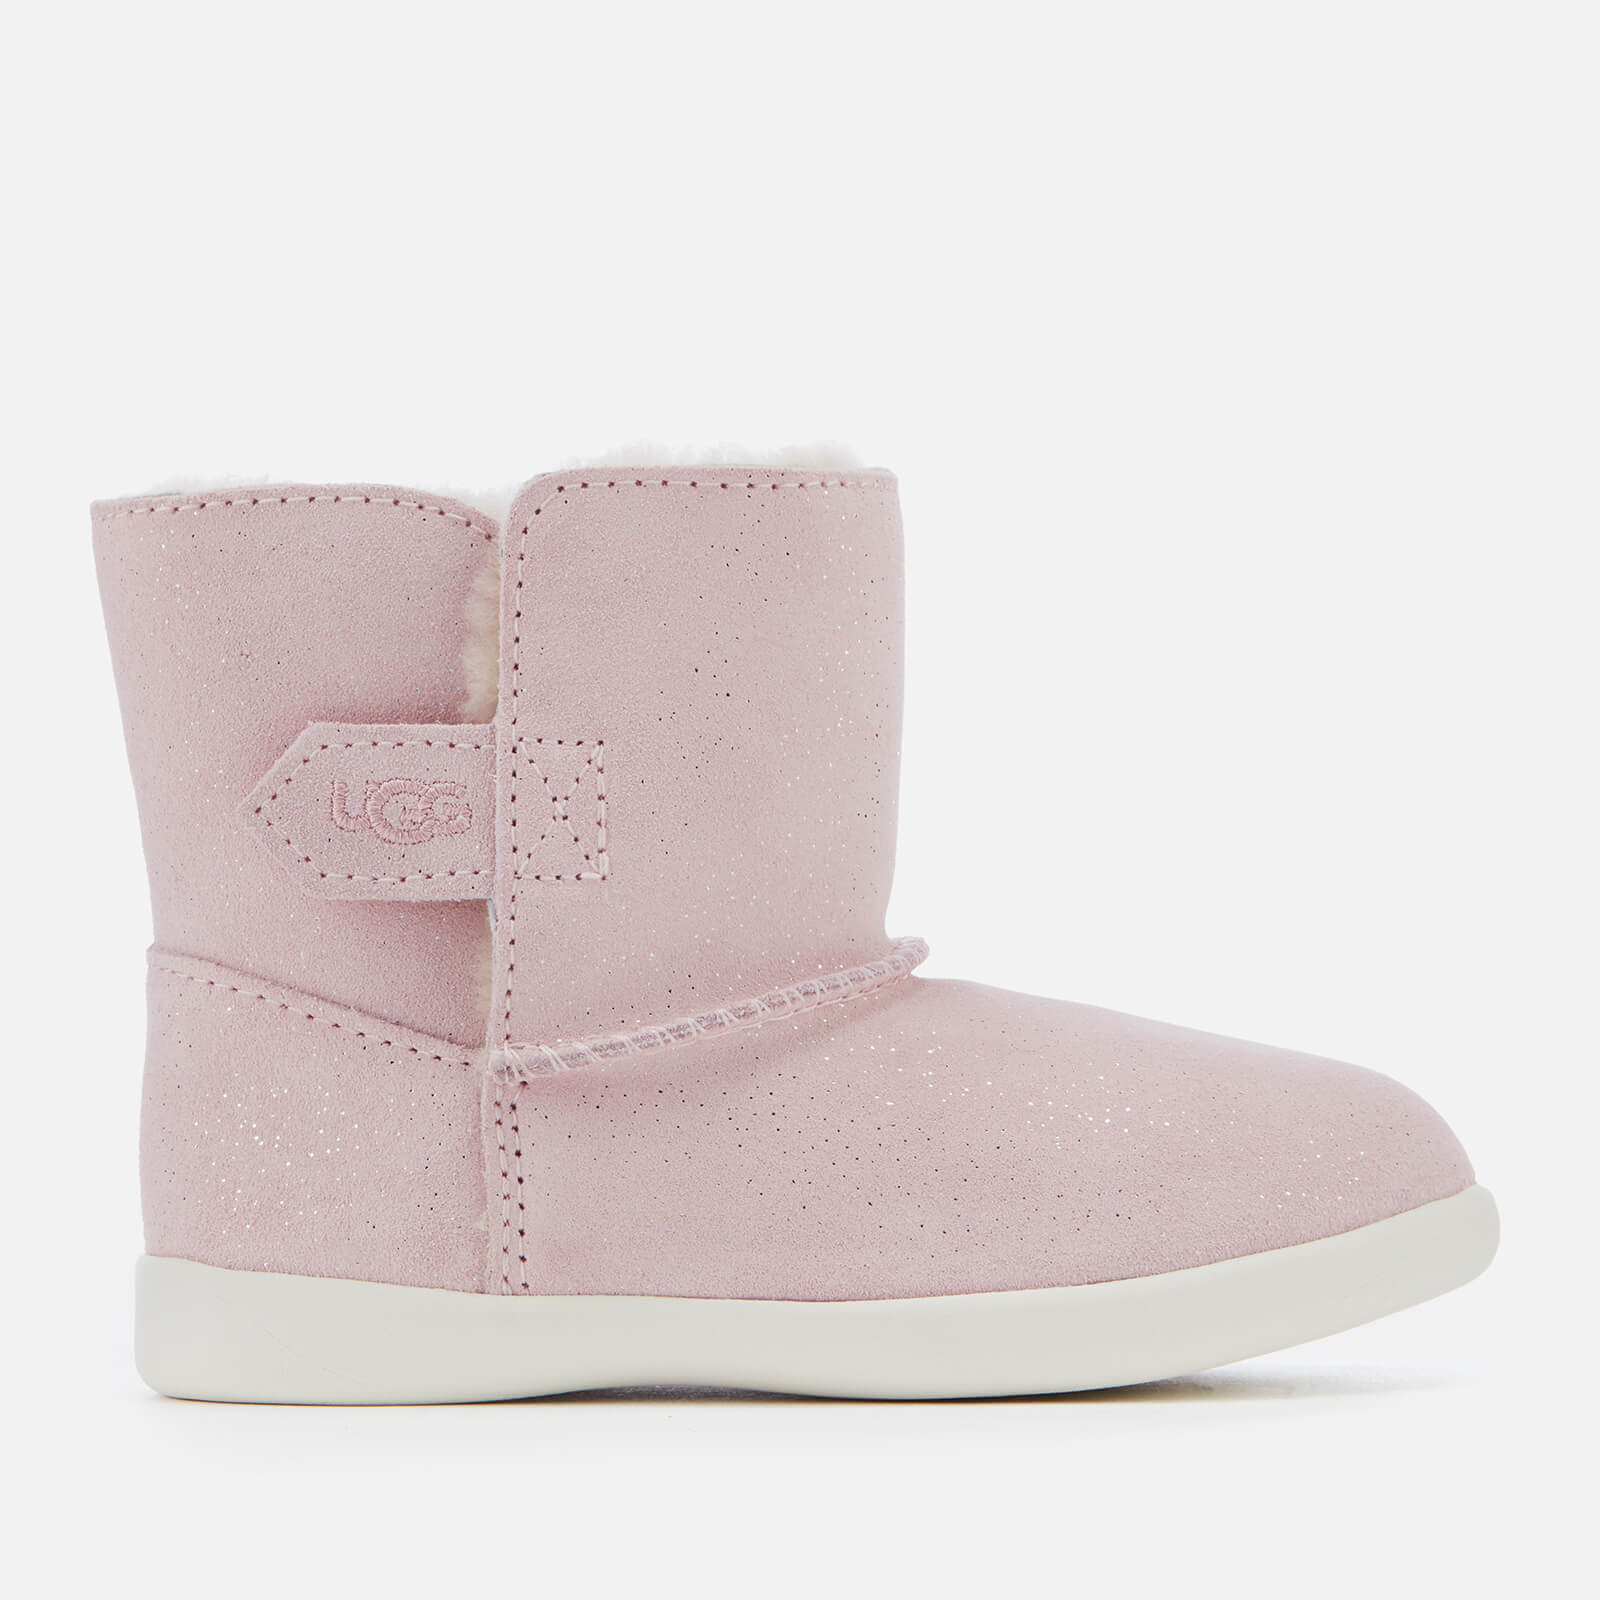 ca9a977c13d UGG Toddler's Keelan Sparkle Suede Boots - Baby Pink